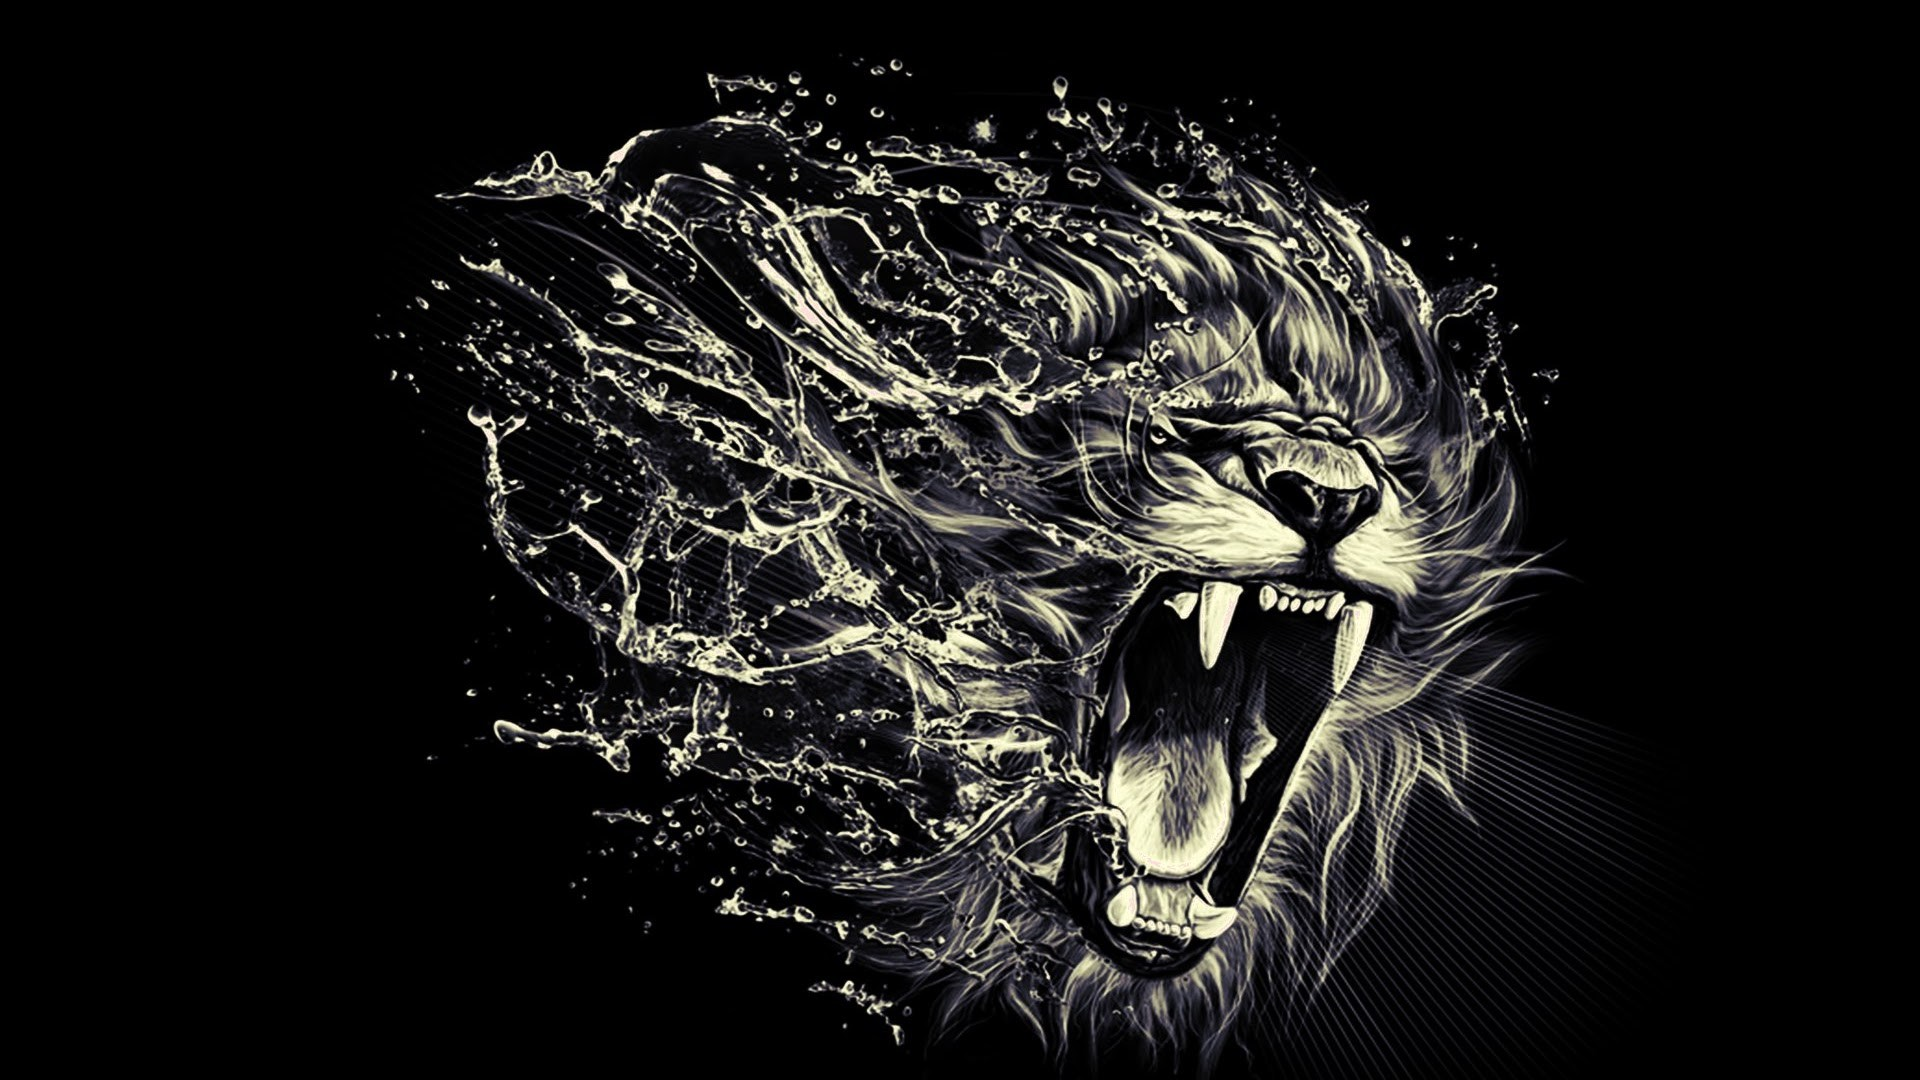 Best 25+ Lion hd wallpaper ideas on Pinterest   Lion images, Lion tattoo  images and Pretty phone wallpaper